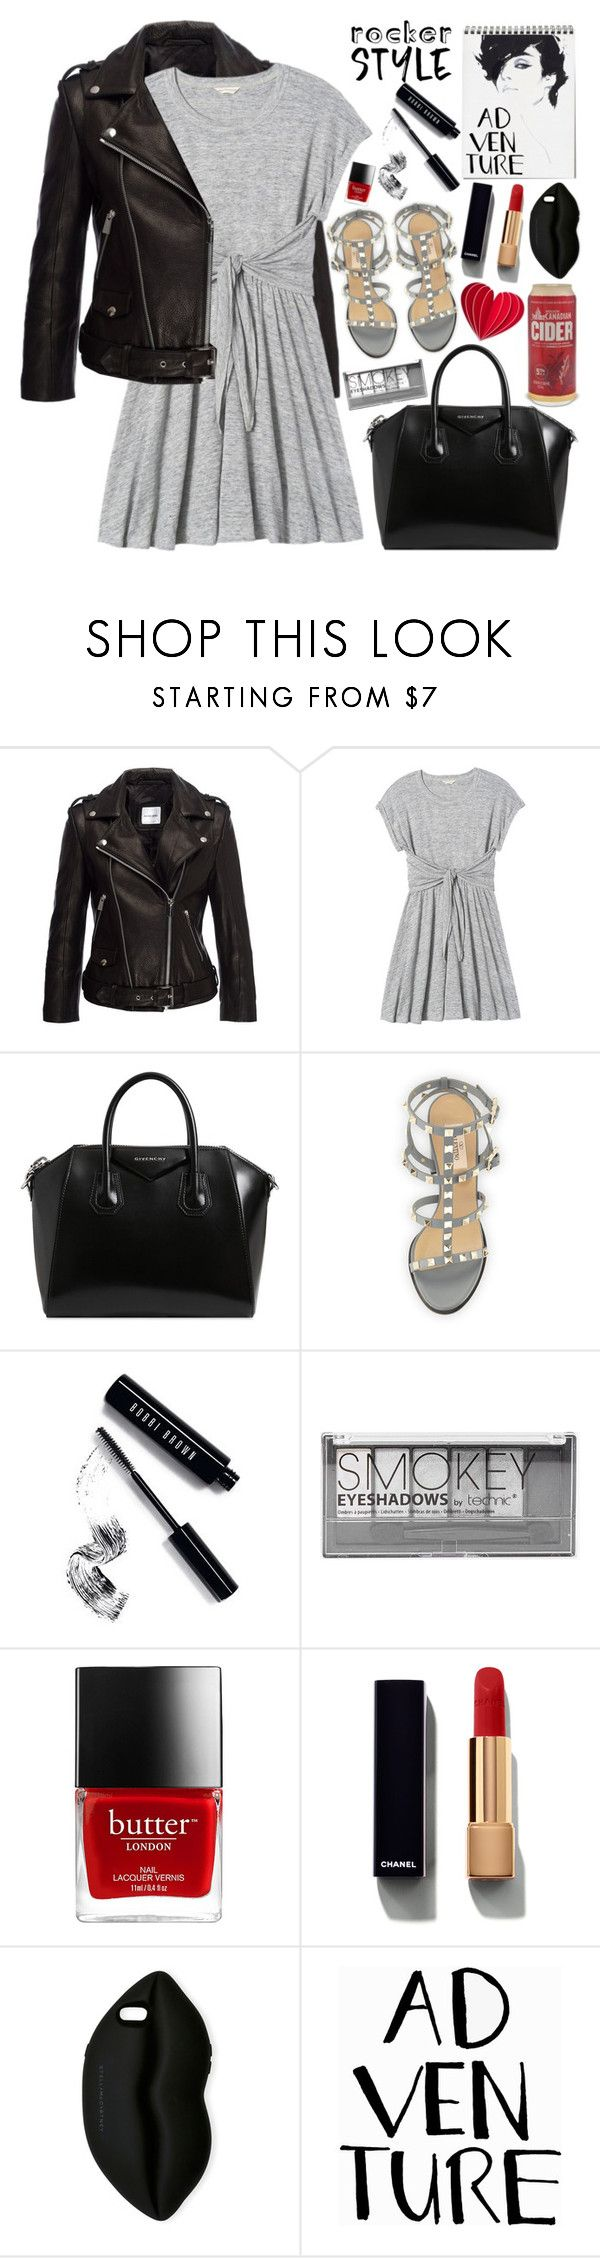 """""""Rocker Chic"""" by martinabb ❤ liked on Polyvore featuring Anine Bing, Rebecca Taylor, Givenchy, Valentino, Bobbi Brown Cosmetics, Boohoo, Chanel, STELLA McCARTNEY, rockerchic and rockerstyle"""